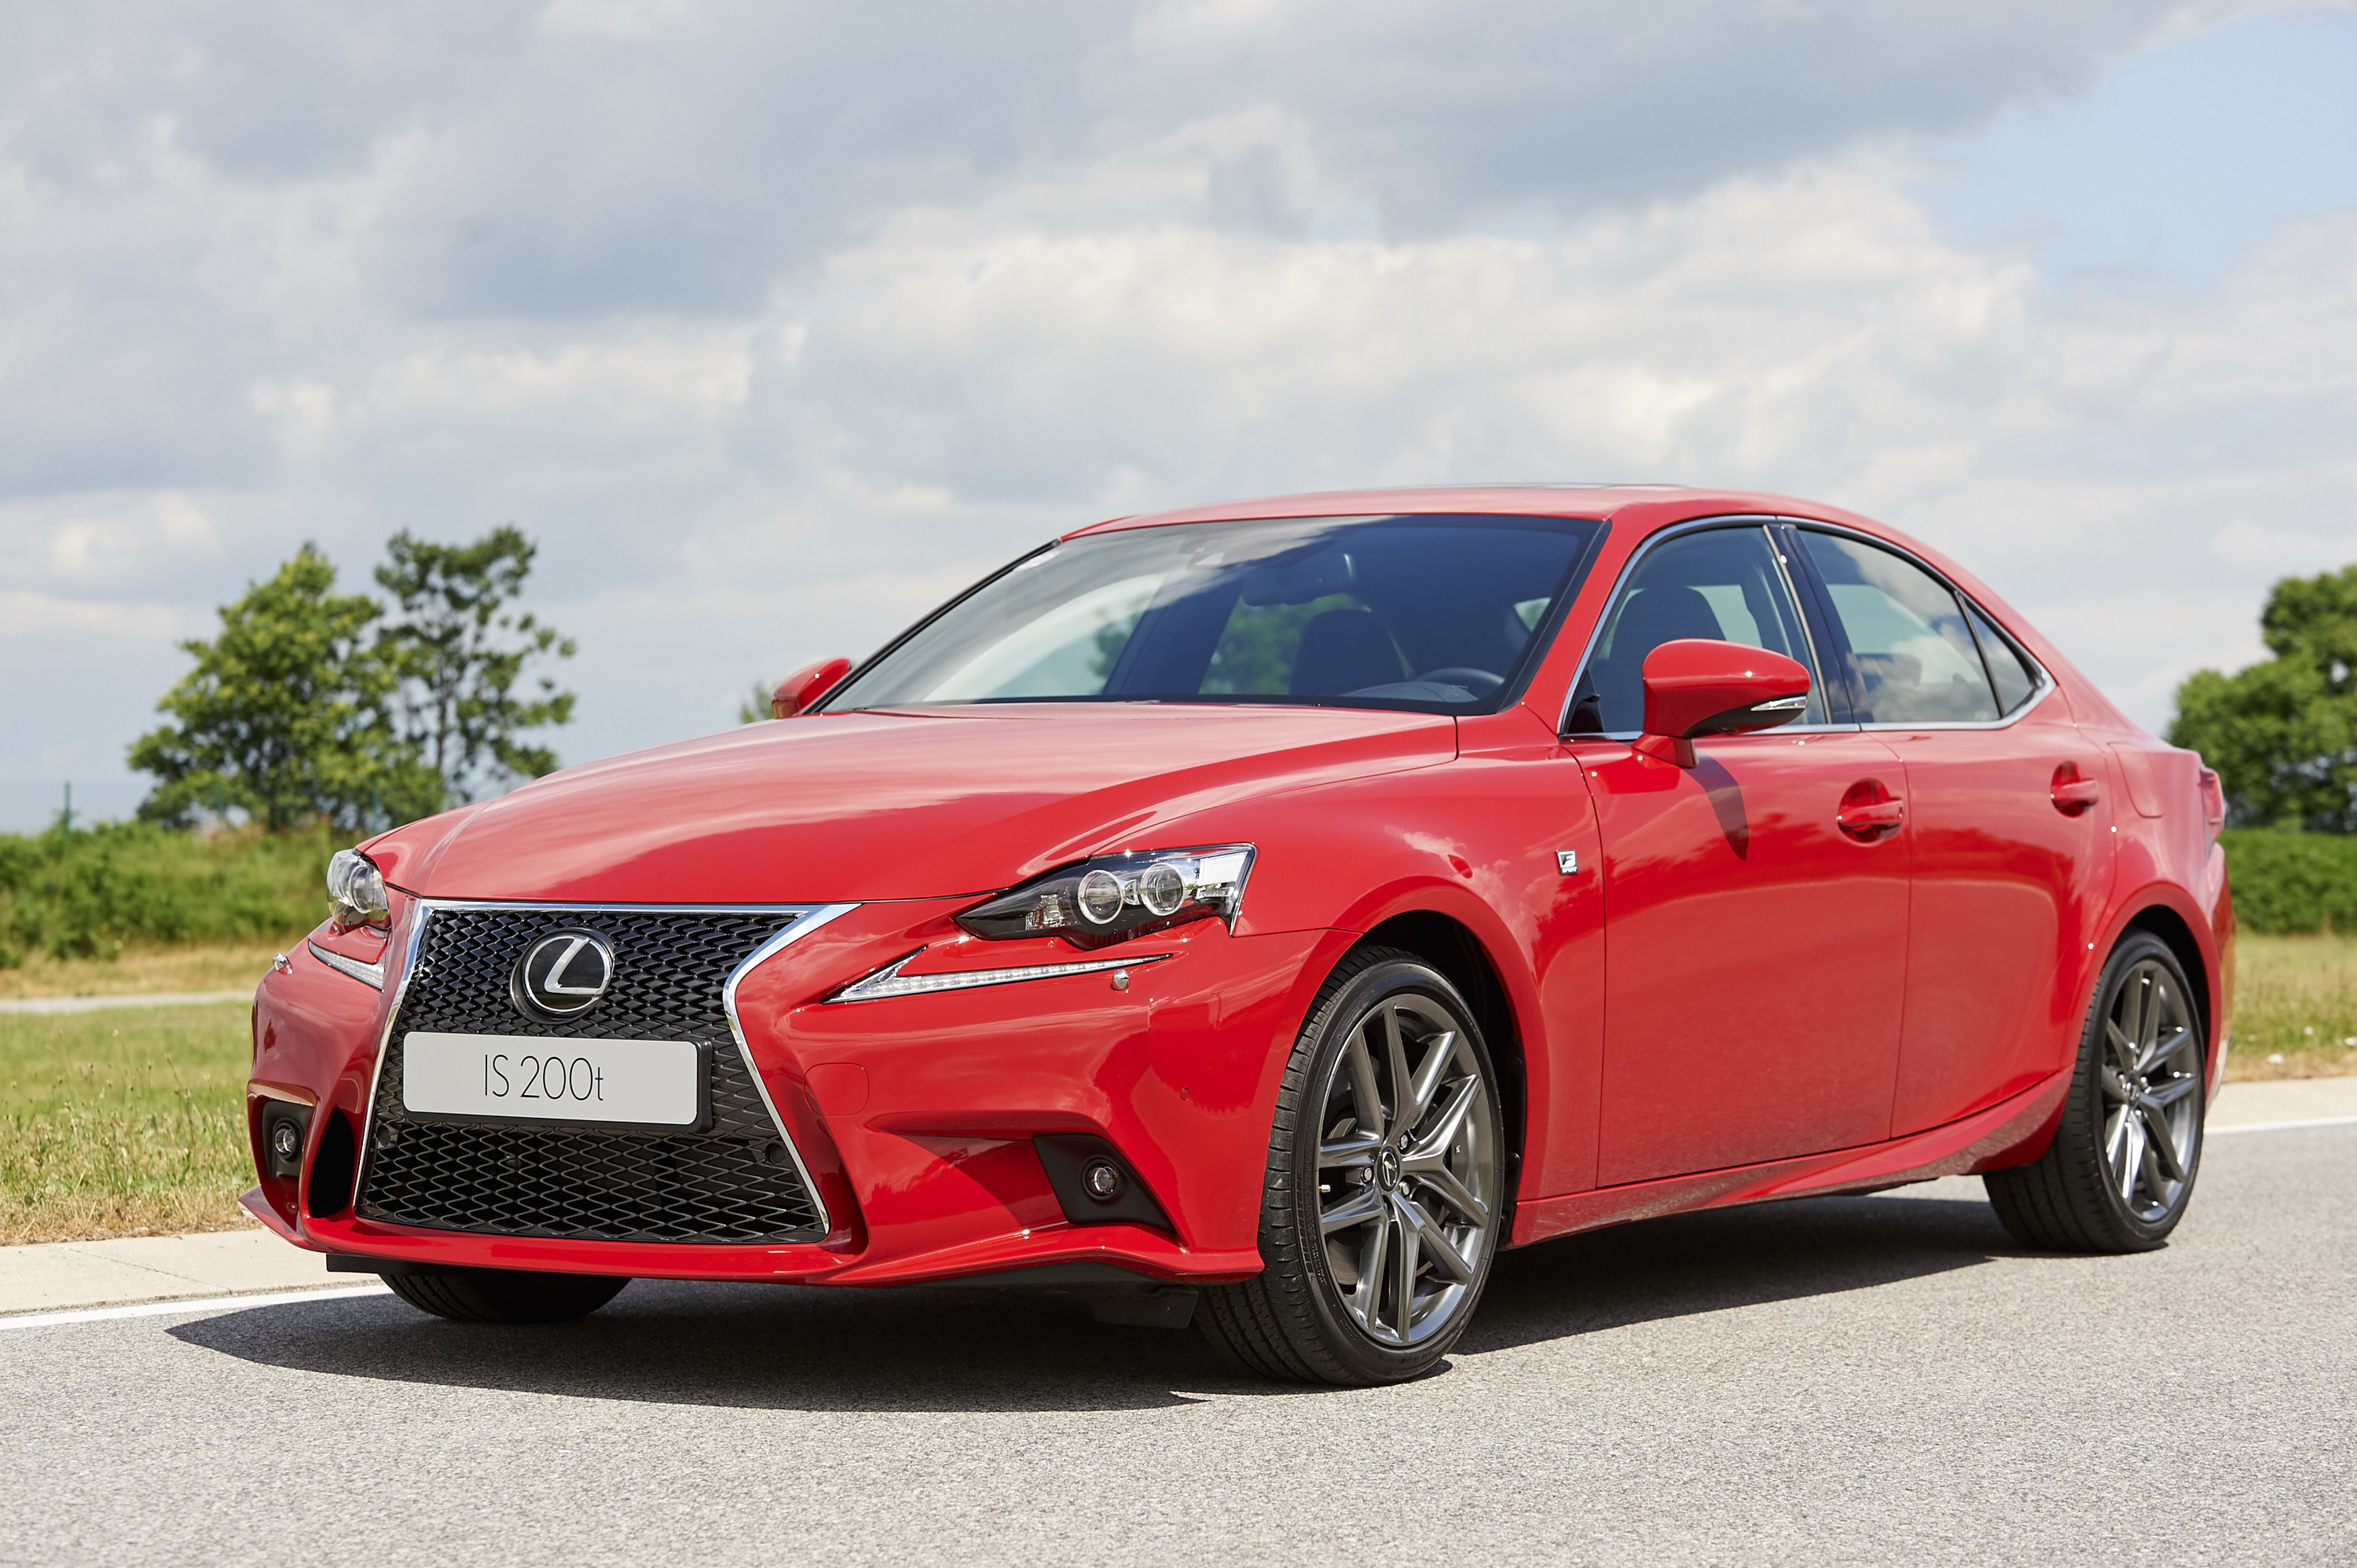 2016 Lexus IS 200t | Top Speed. »